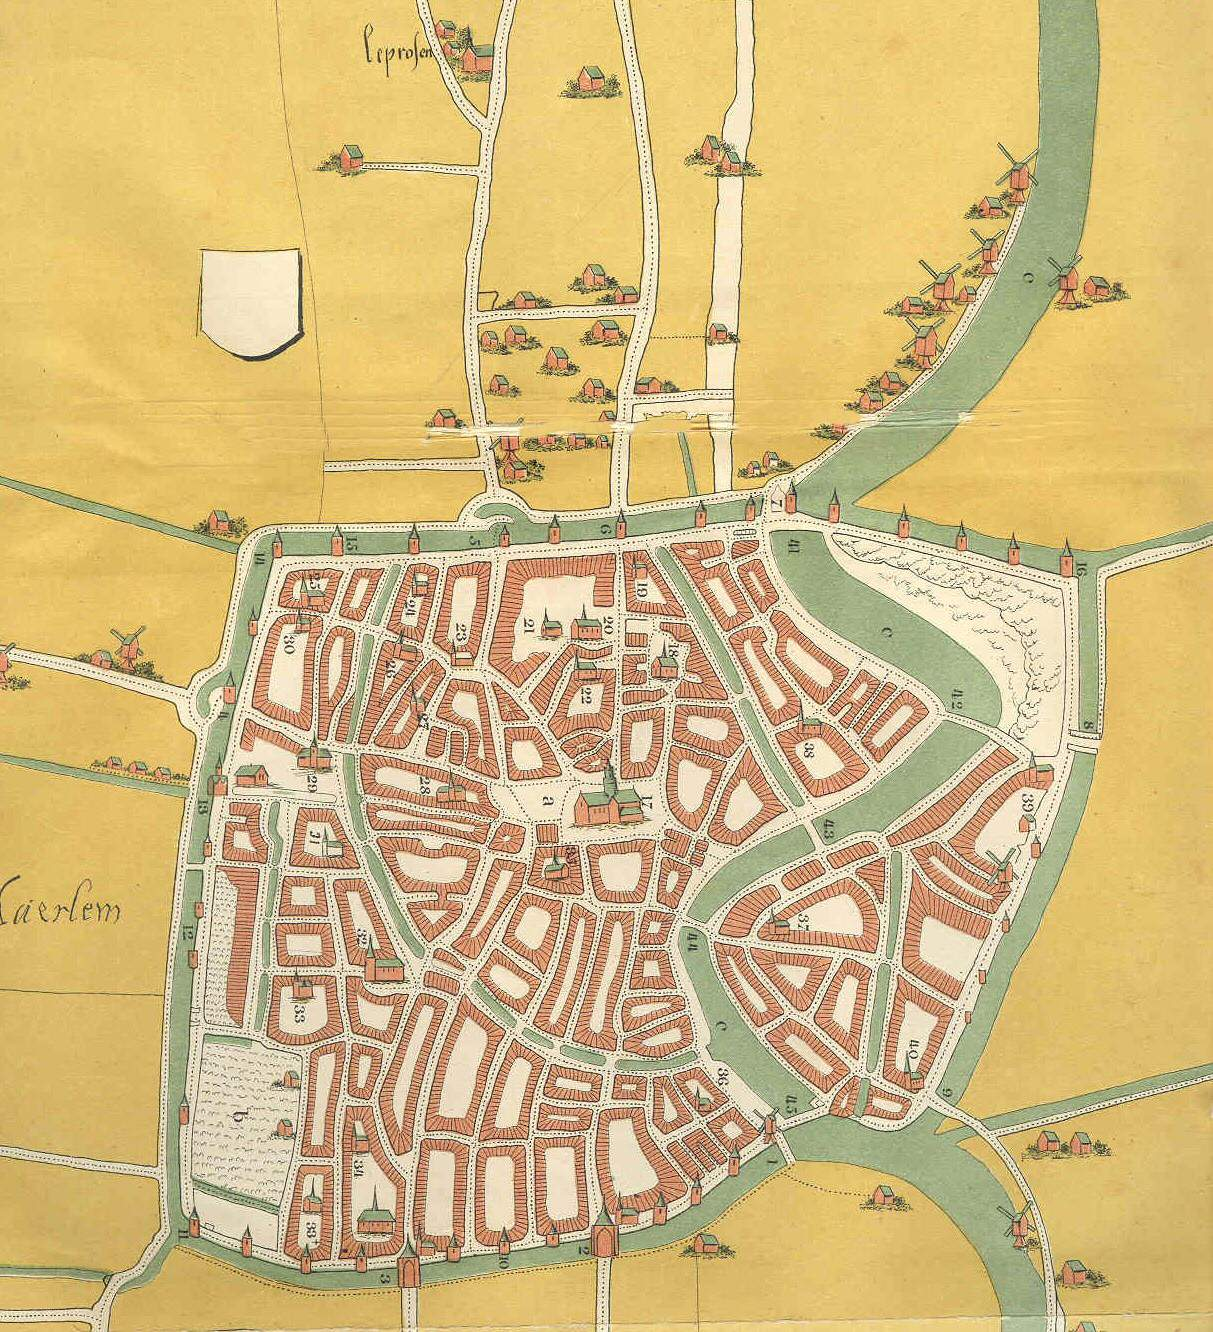 Large Haarlem Maps for Free Download and Print HighResolution and